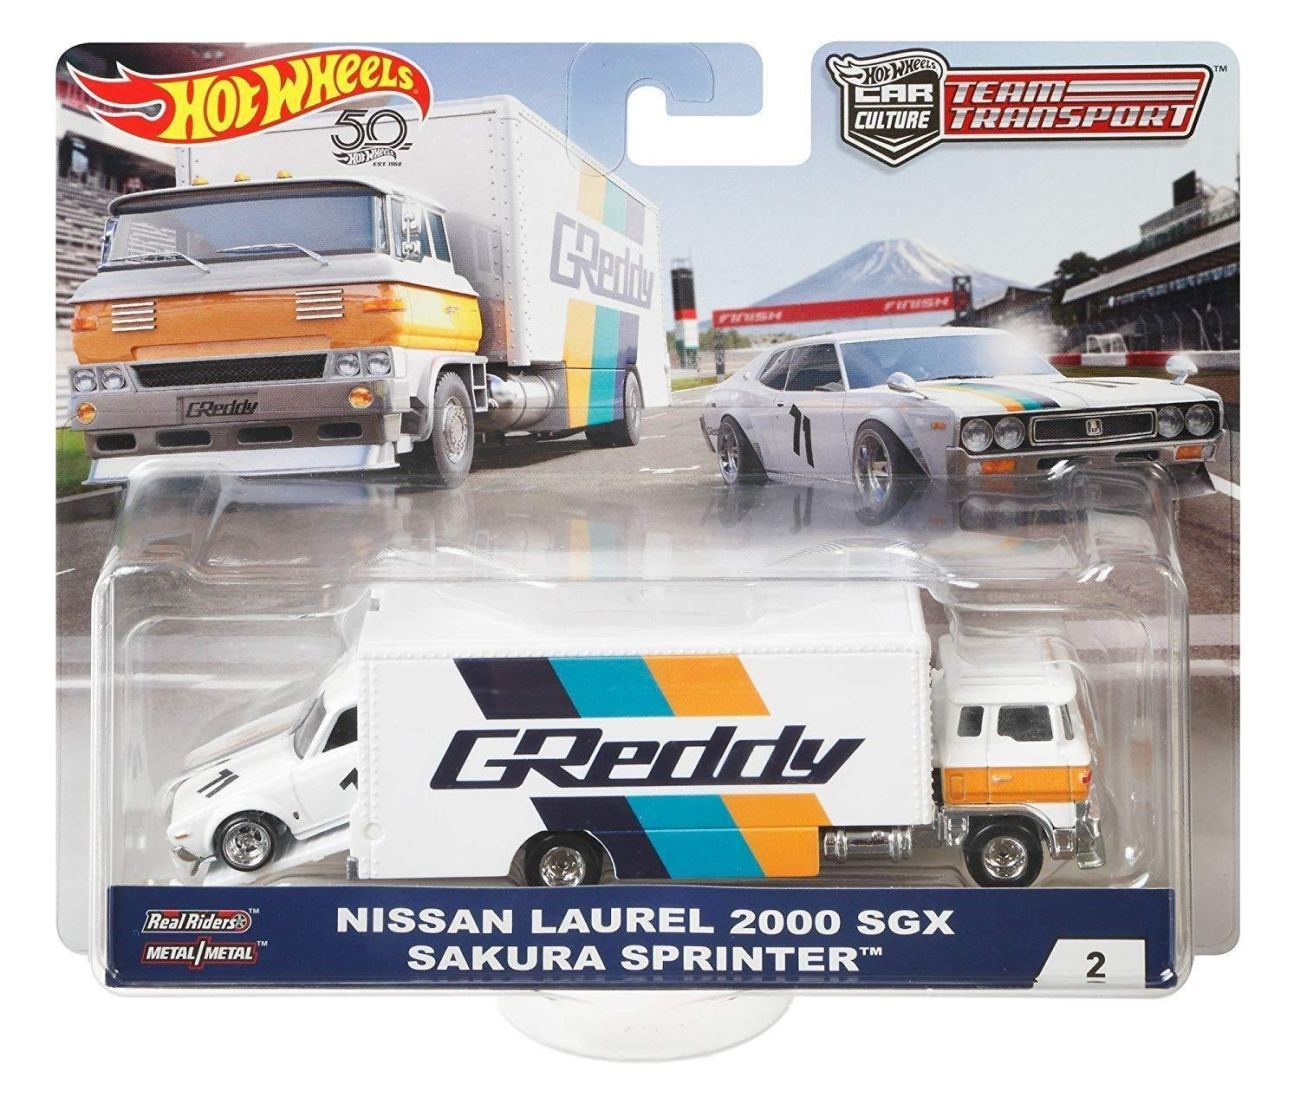 8e0eb80f142a6 50% OFF Team Transport: Nissan Laurel / Sakura Sprinter on AMAZON ...